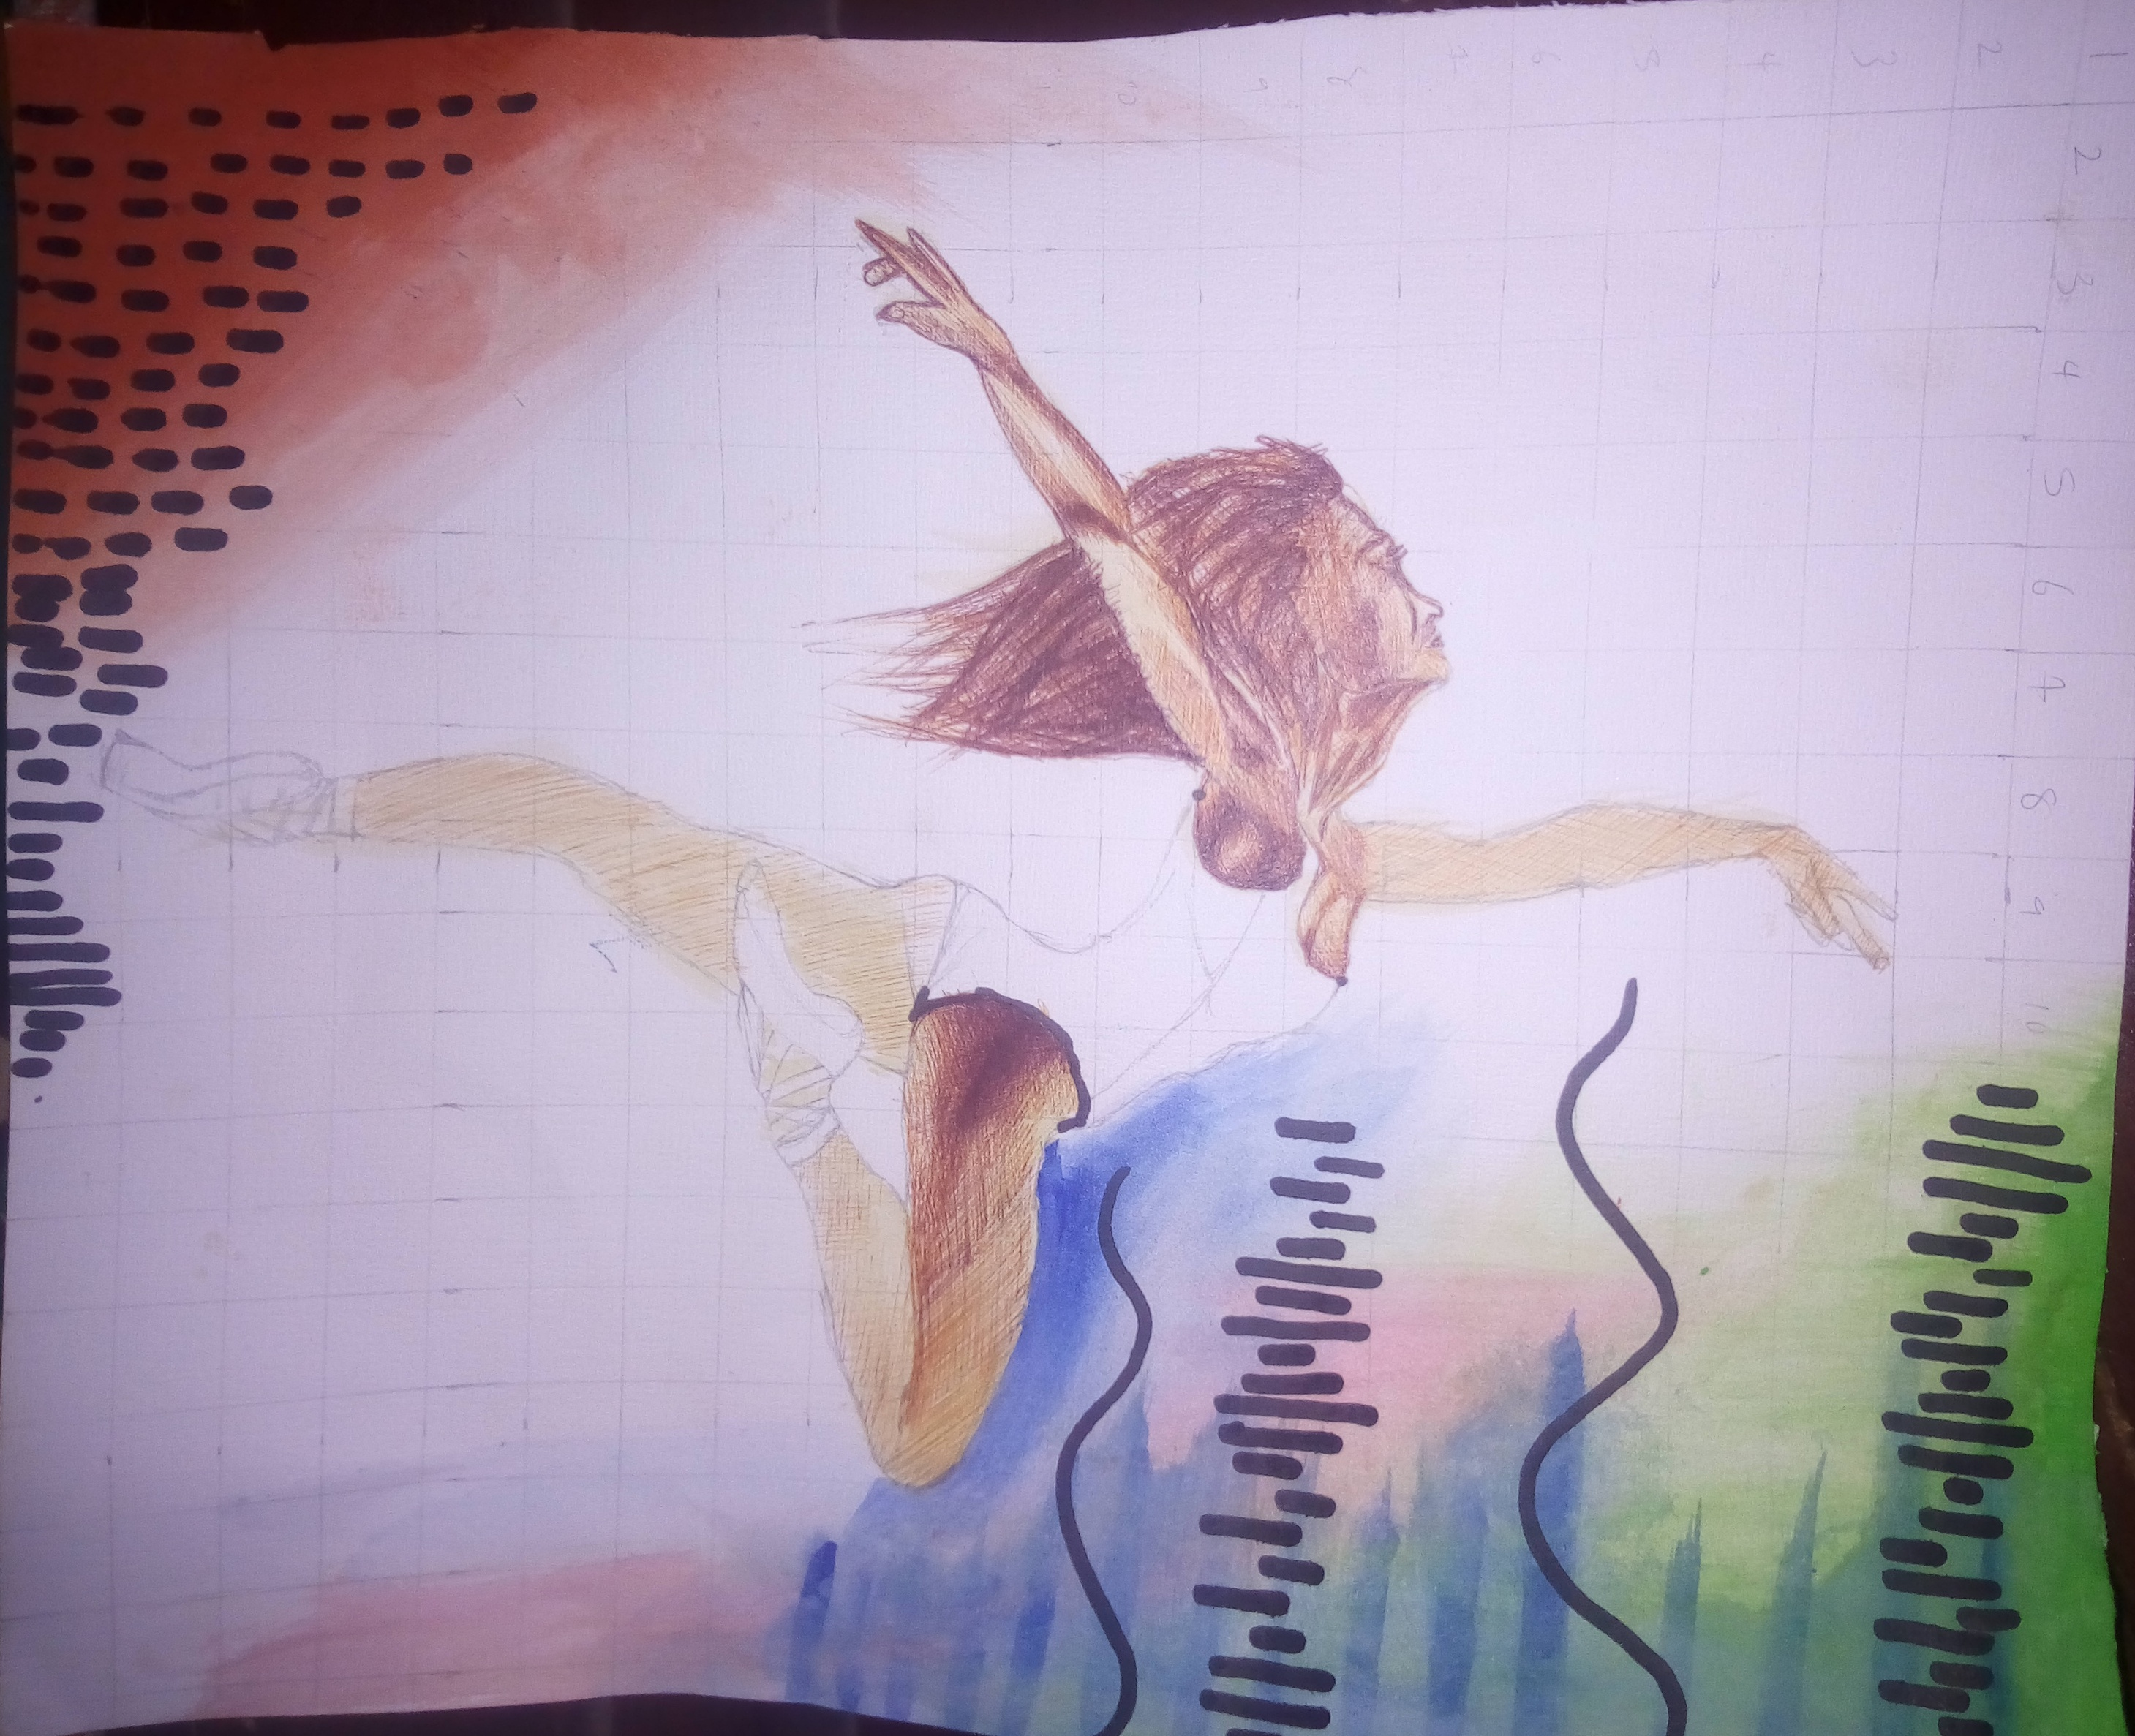 fine art by Abdulwaheed - the spark youth empowerment platforms in Nigeria